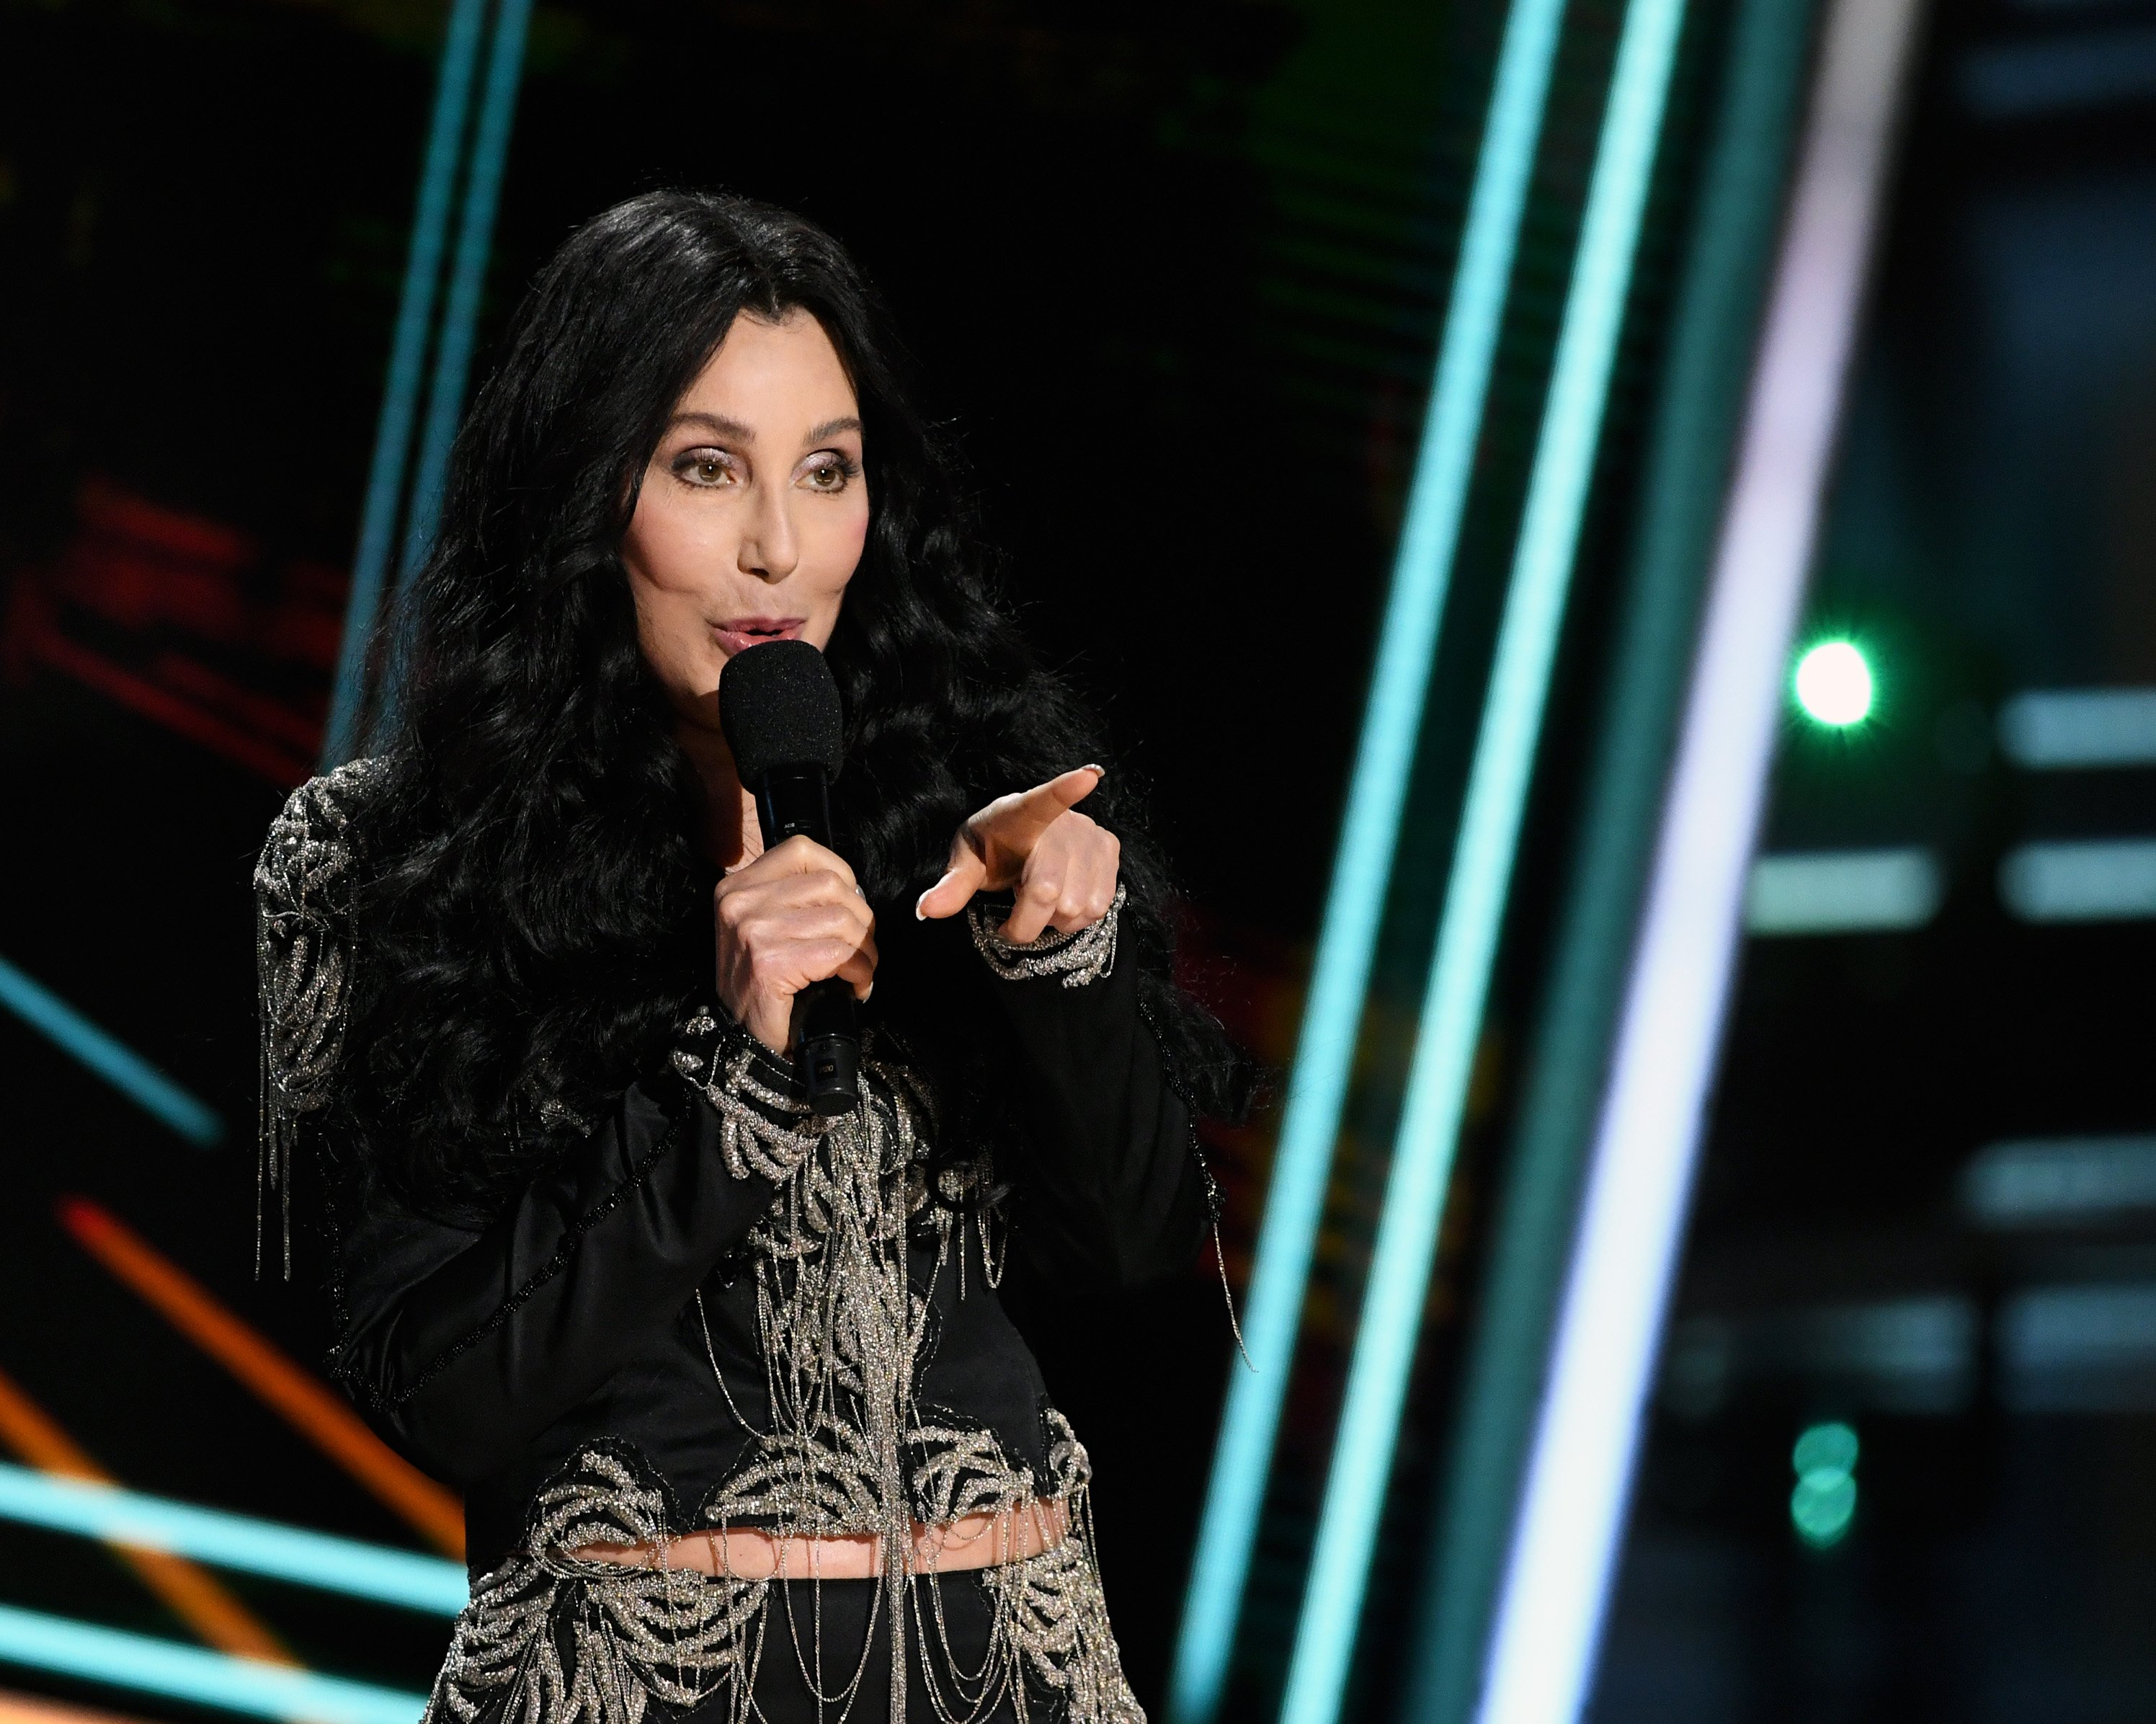 Cher presents the Icon Award at the 2020 Billboard Music Awards, broadcast on October 14, 2020, in Los Angeles, CA. | Source: Getty Images.